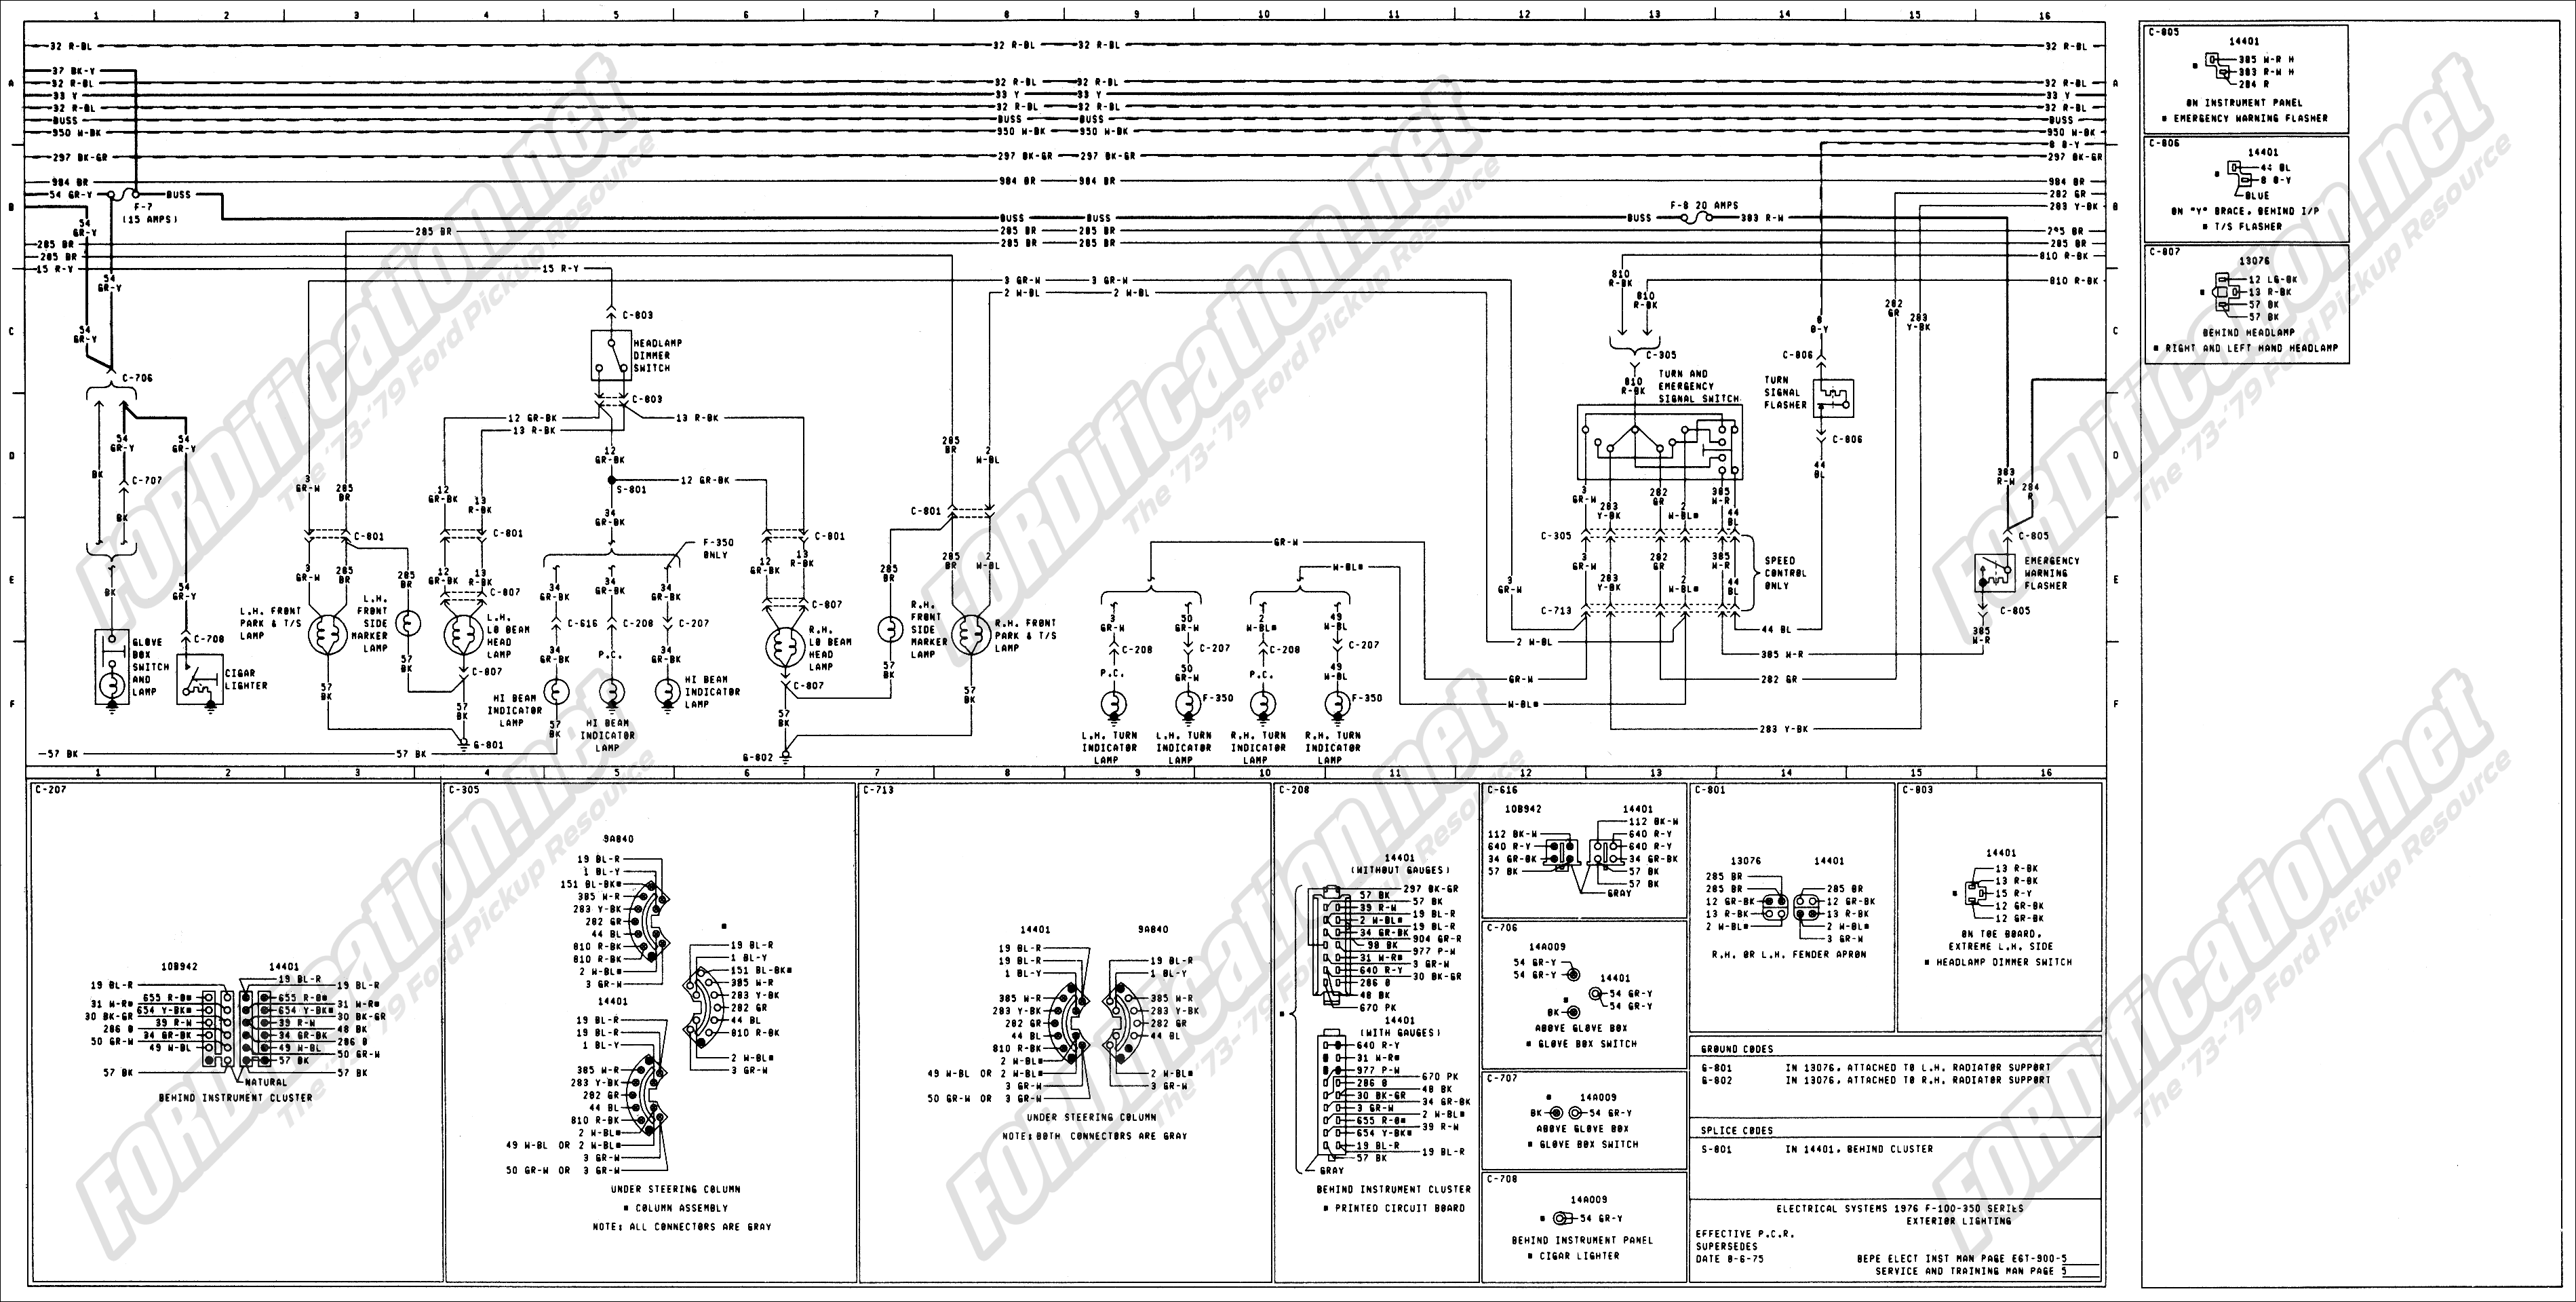 1973 1979 ford truck wiring diagrams schematics fordification net rh  fordification net F250 Fuel Tank Vent 96 F250 7 3 Fuel Tank Valve